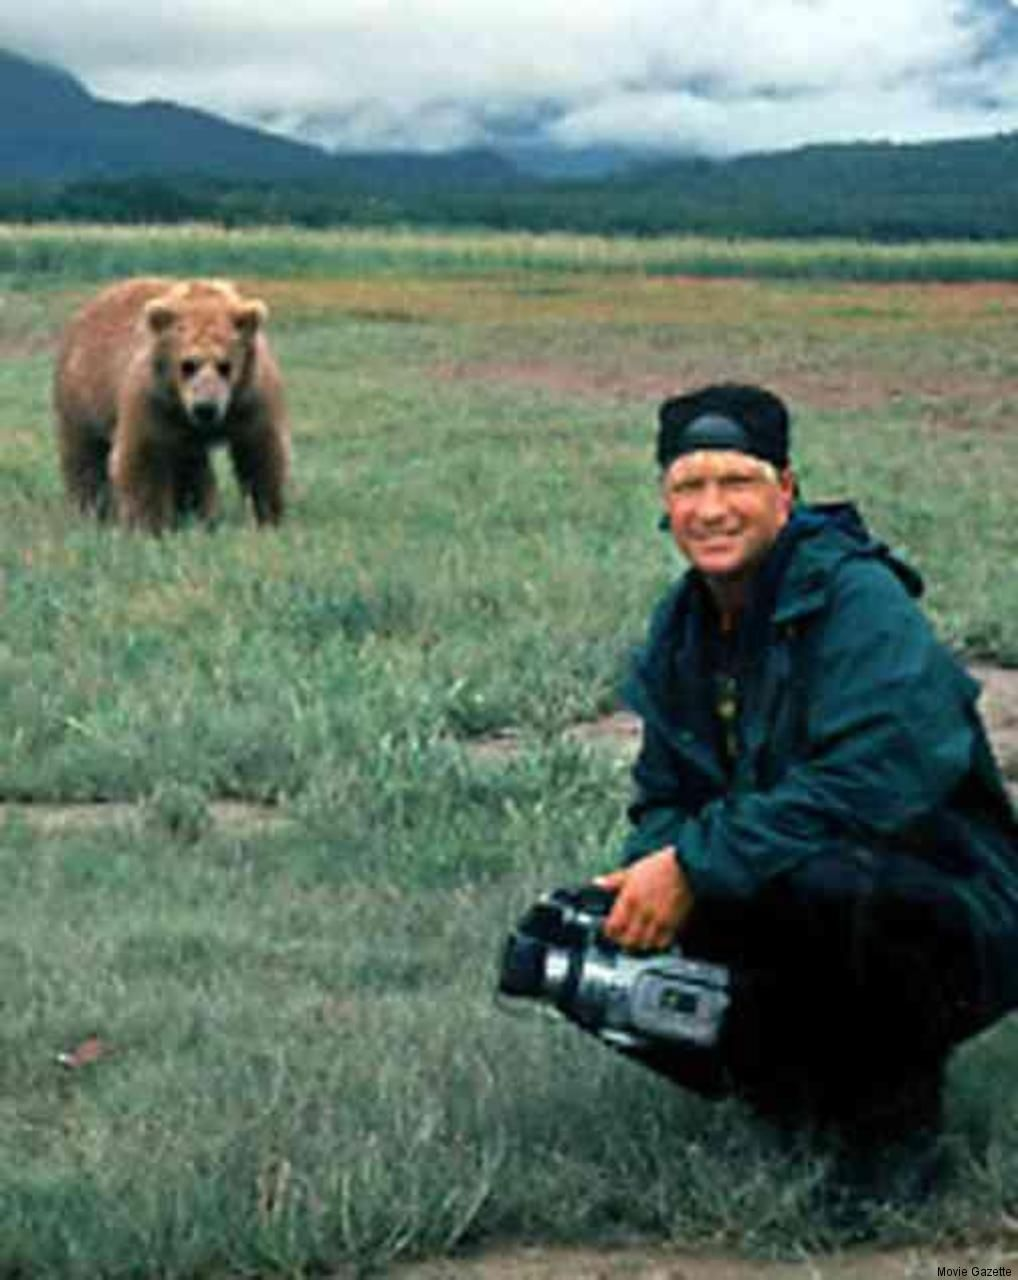 timothy treadwell behavior In defense of timothy treadwell and amie huguenard by captain paul watson on october 12th, the anchorage daily news published a column by mike doogan, self-desc.